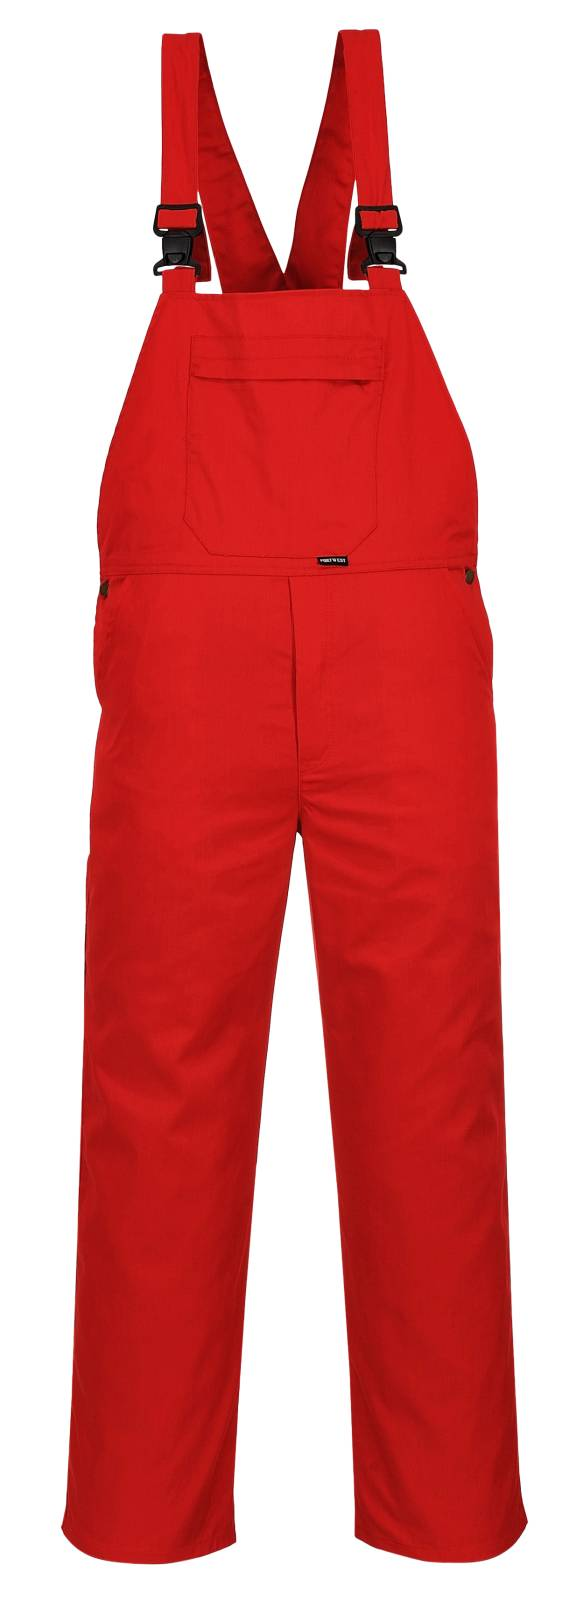 Portwest Amerikaanse overalls C875 UPF50+ UV rood(RE)